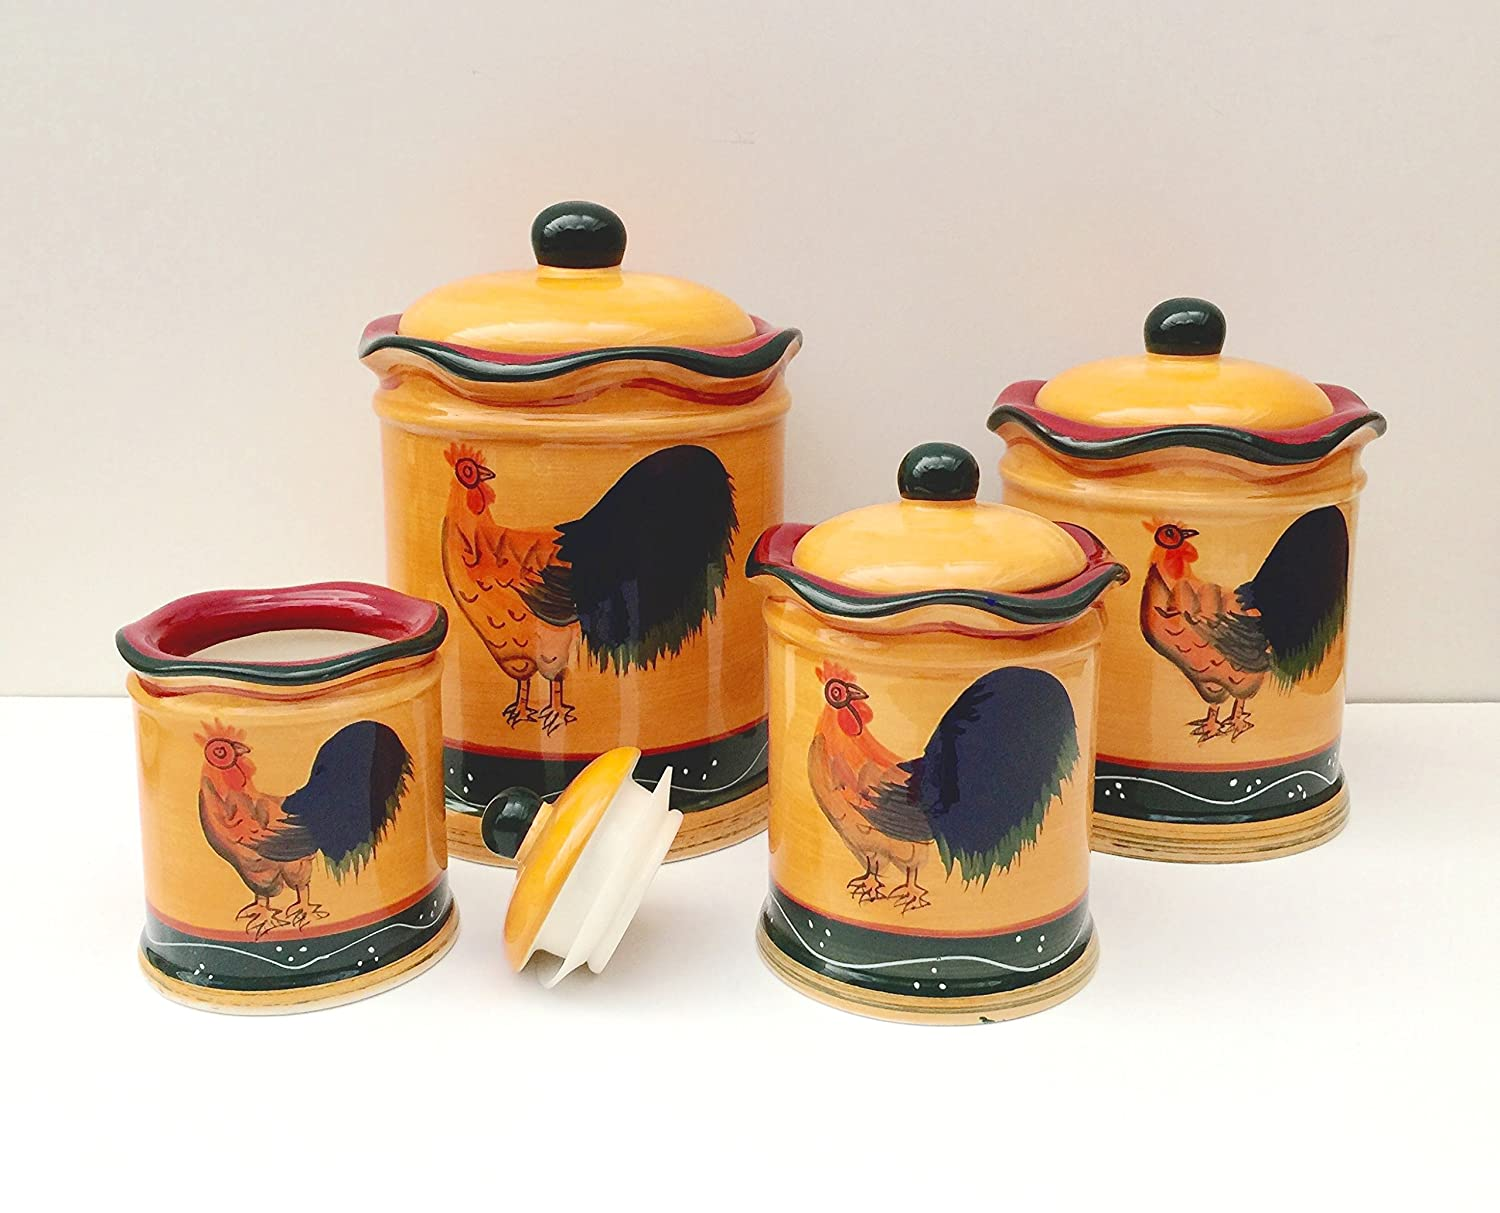 amazon com tuscany sunshine country rooster hand painted amazon com tuscany sunshine country rooster hand painted canisters set of 4 85701 by ack kitchen storage and organization product sets